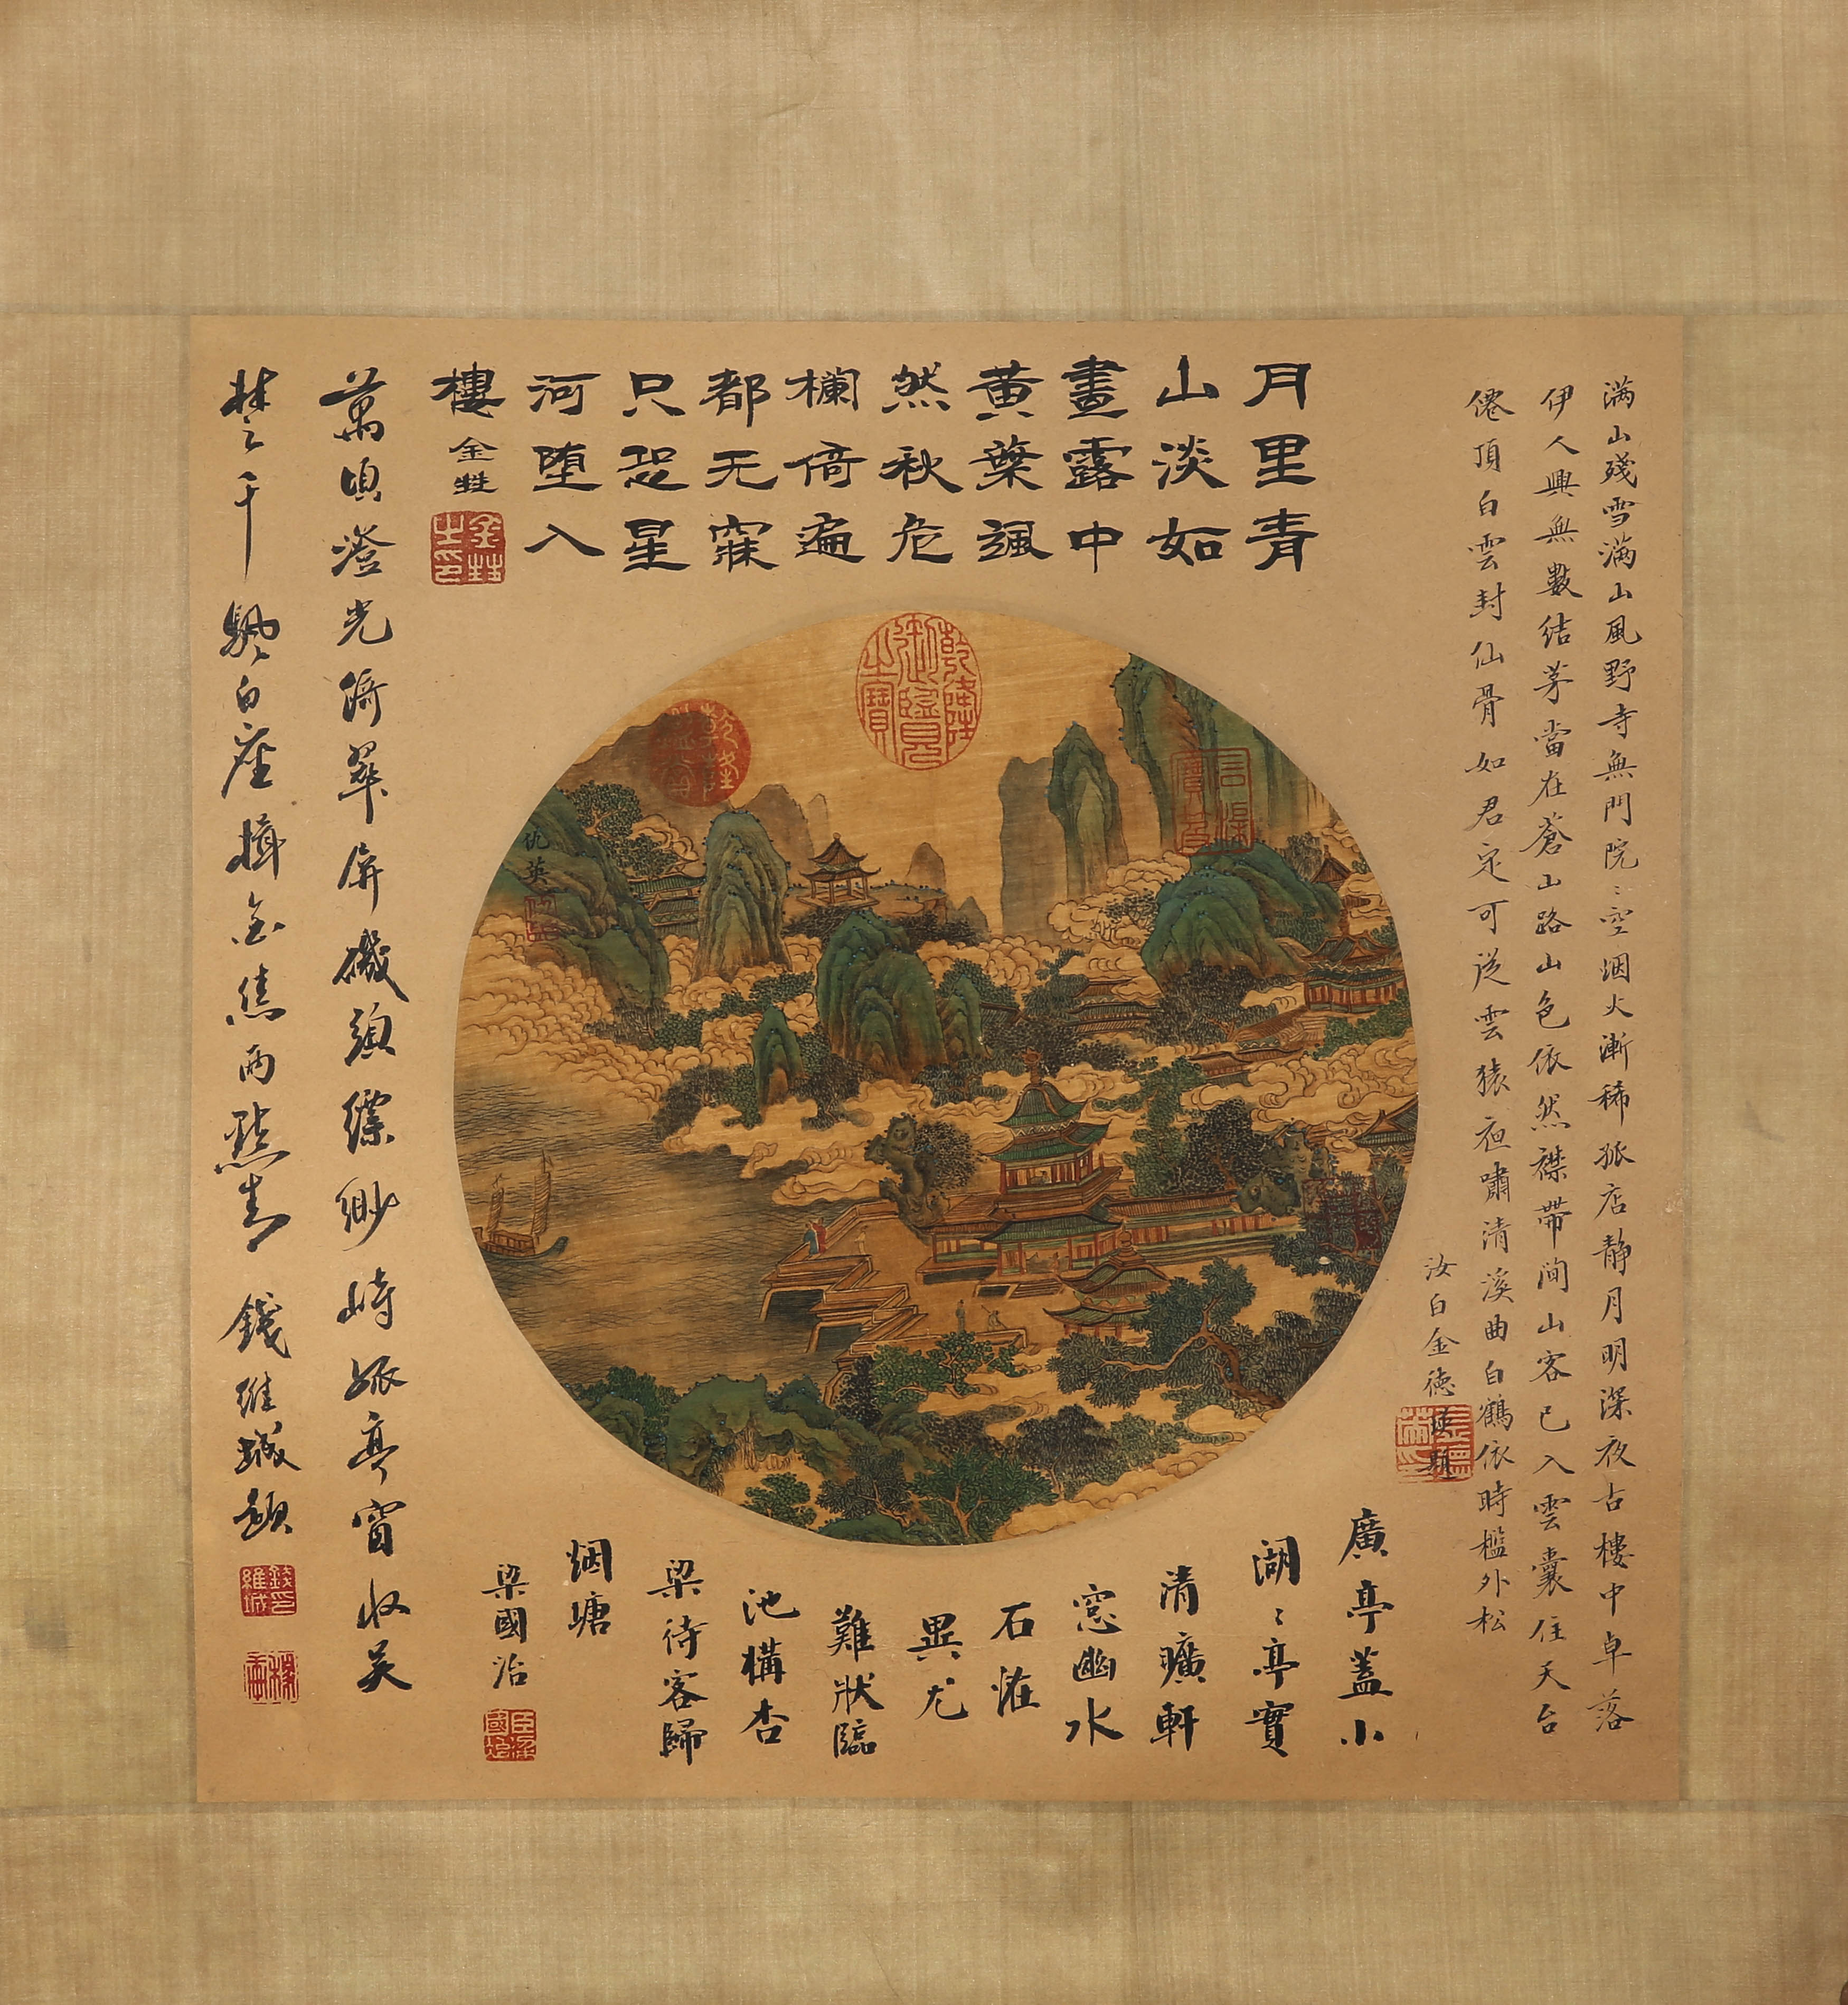 PAINTING AND CALLIGRAPHY 'CITYSCAPE', CHINA - Image 3 of 9